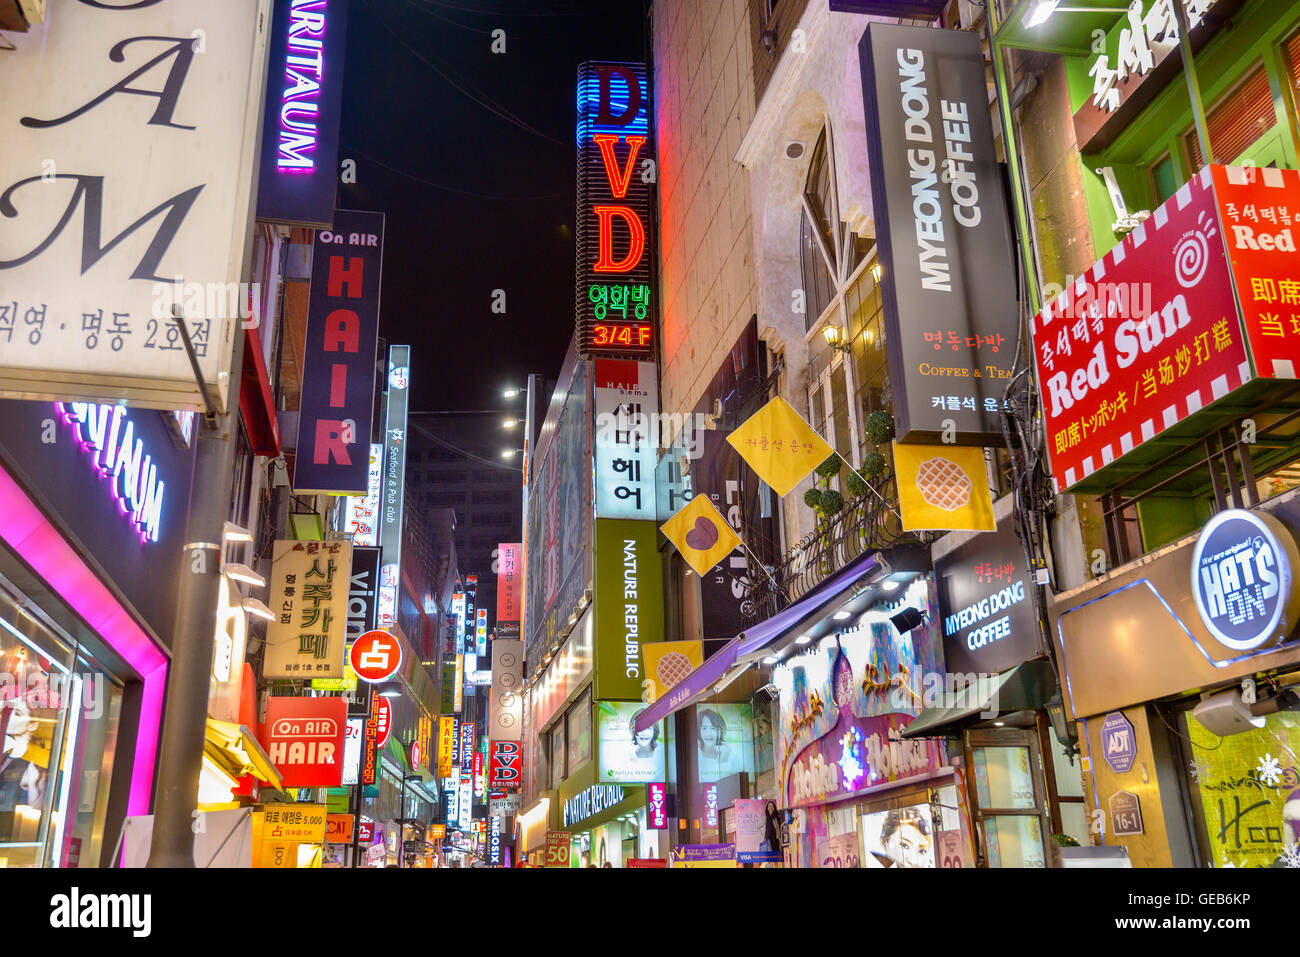 SEOUL, SOUTH KOREA - FEBRUARY 14, 2013: Neon signs line the Myeong-Dong nightlife district in Seoul. - Stock Image